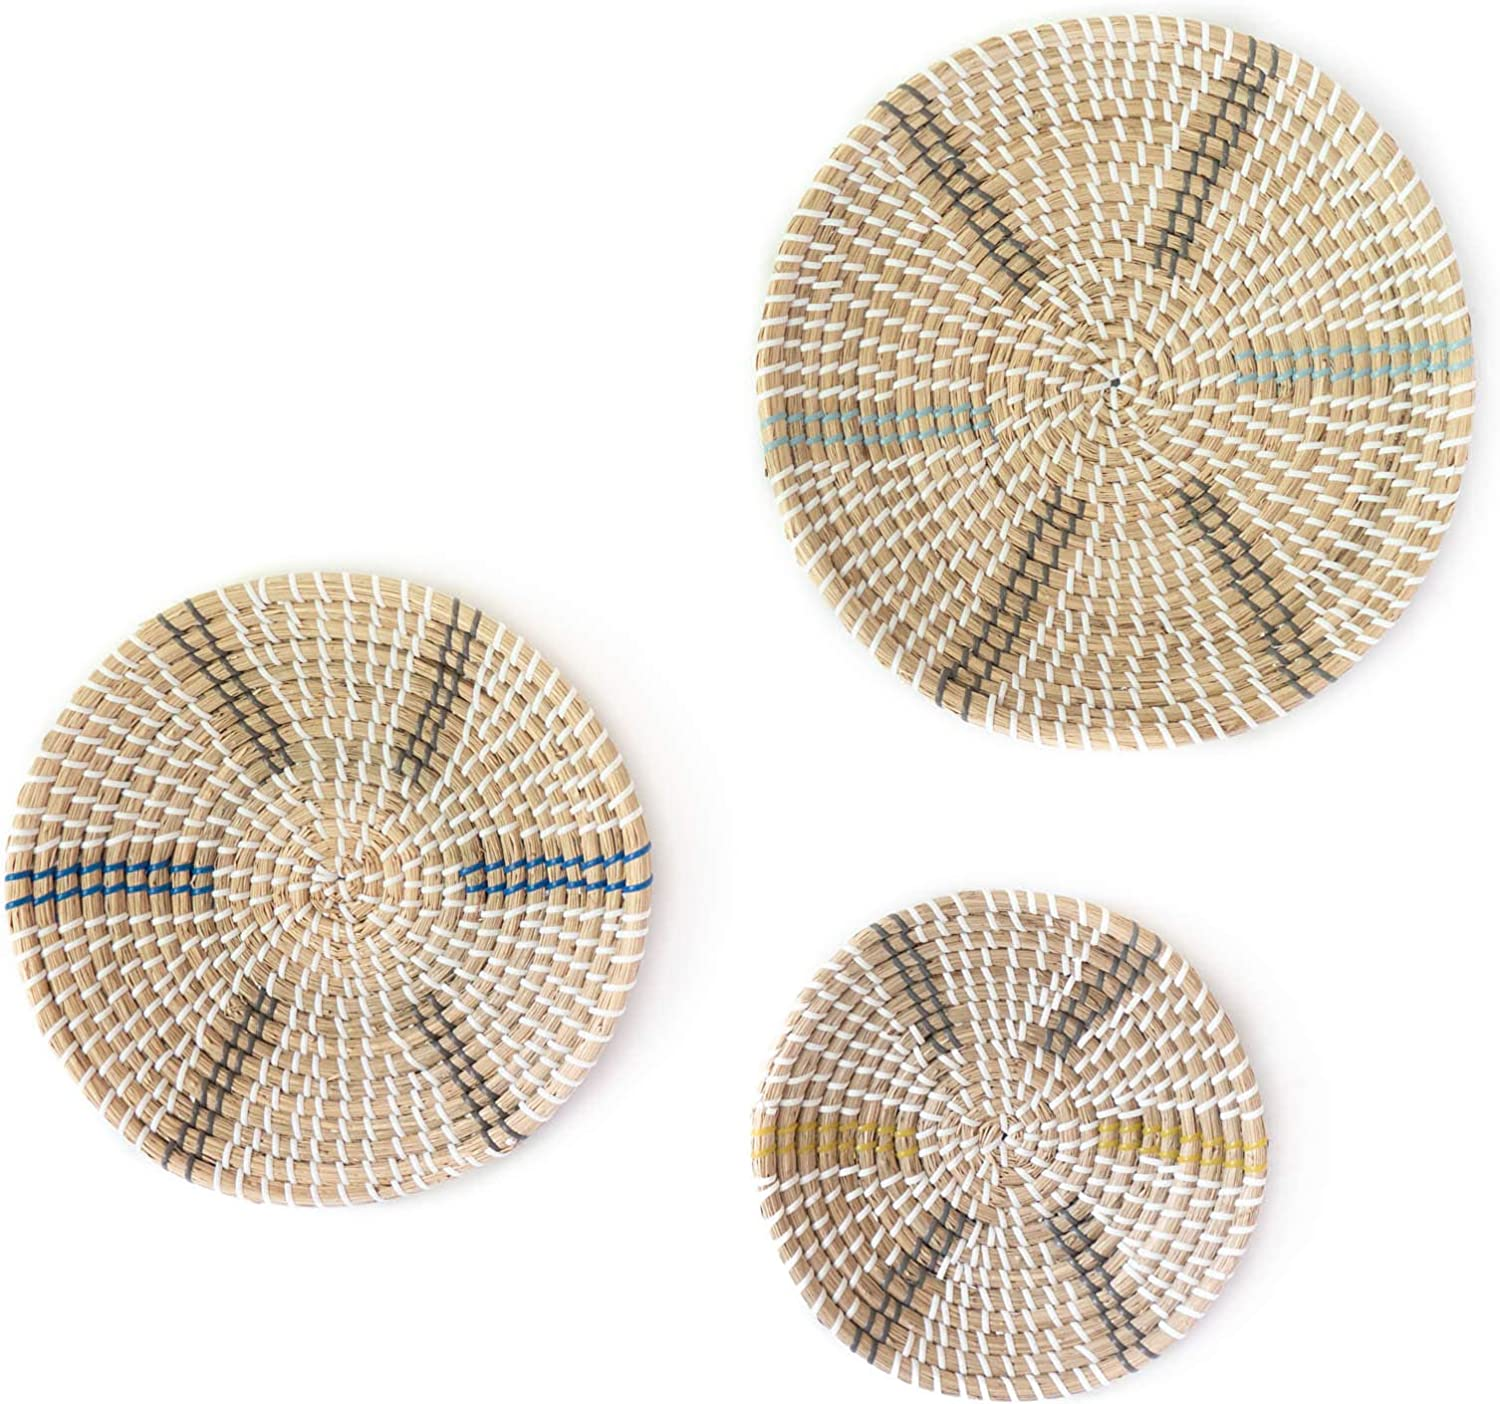 Hanging Woven Wall Basket Set of 3 - Handmade Round Woven Basket Wall Decor Made of Seagrass - Flat Woven Fruit Baskets for Wall Decor - Add These Trending Boho Baskets to Your Home Decor